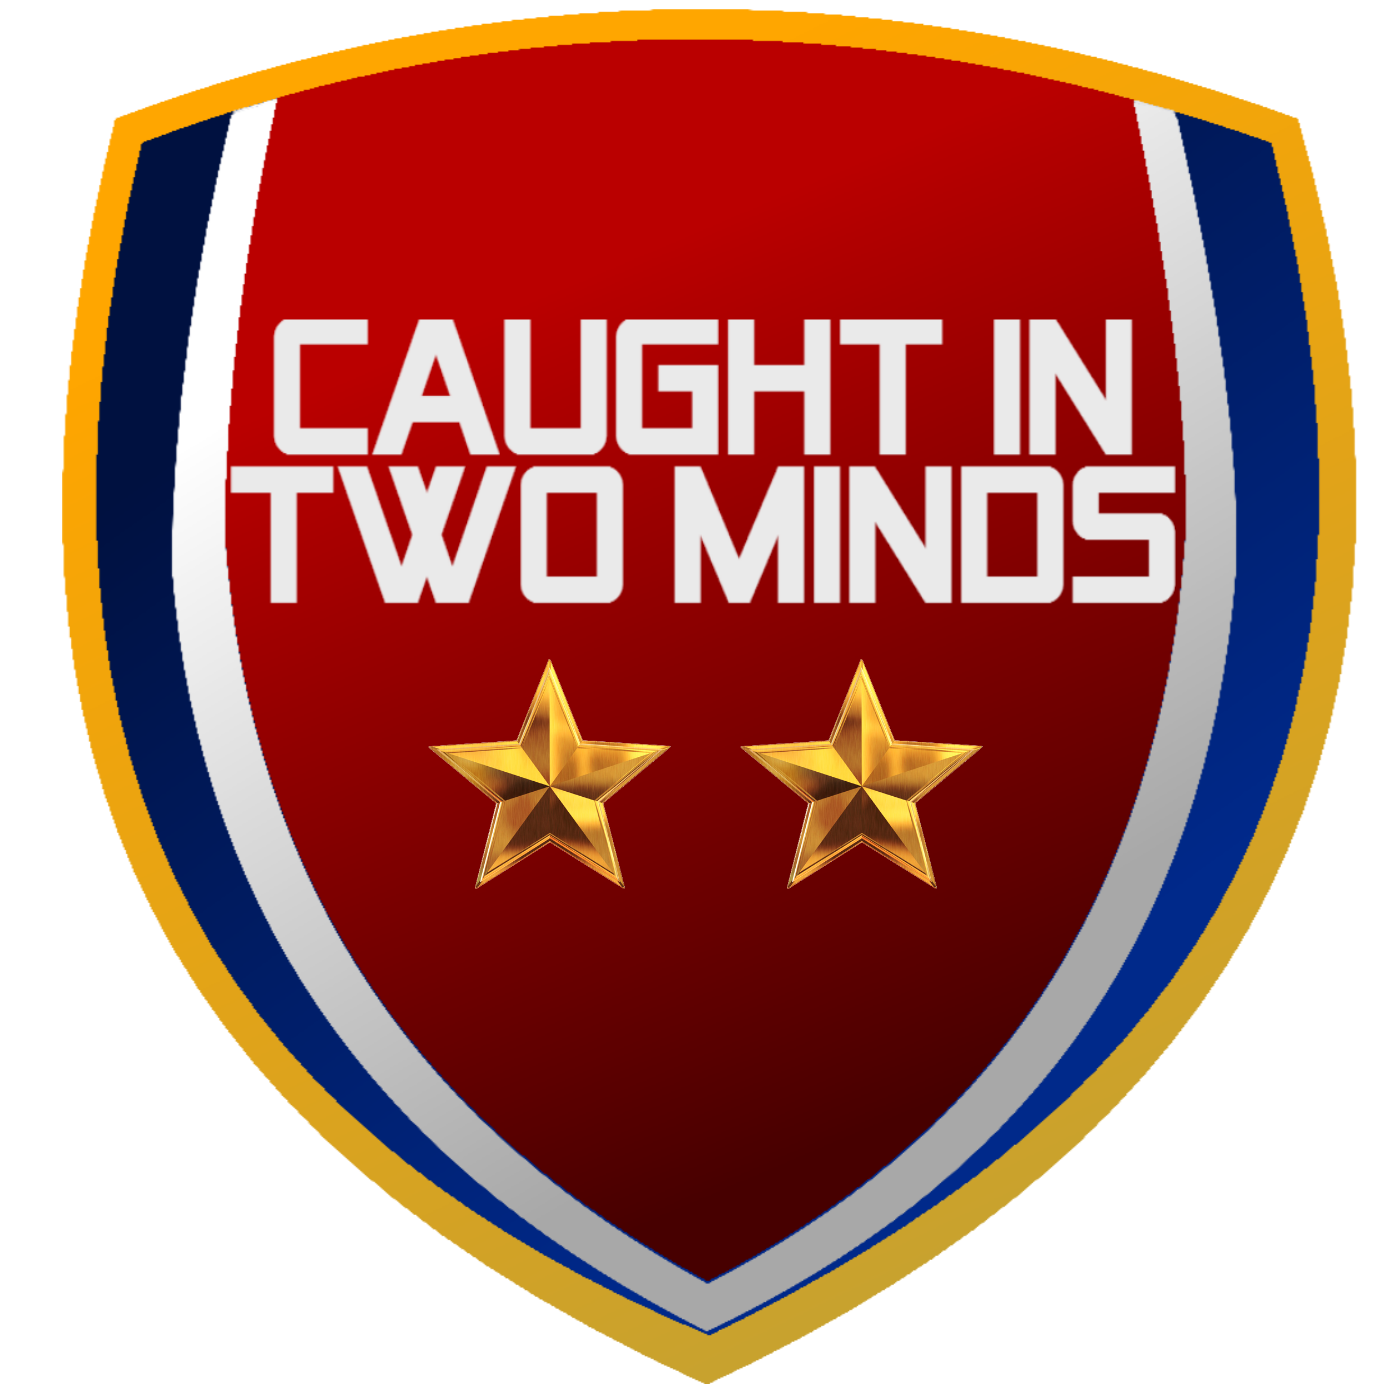 14 - Caught In Two Minds